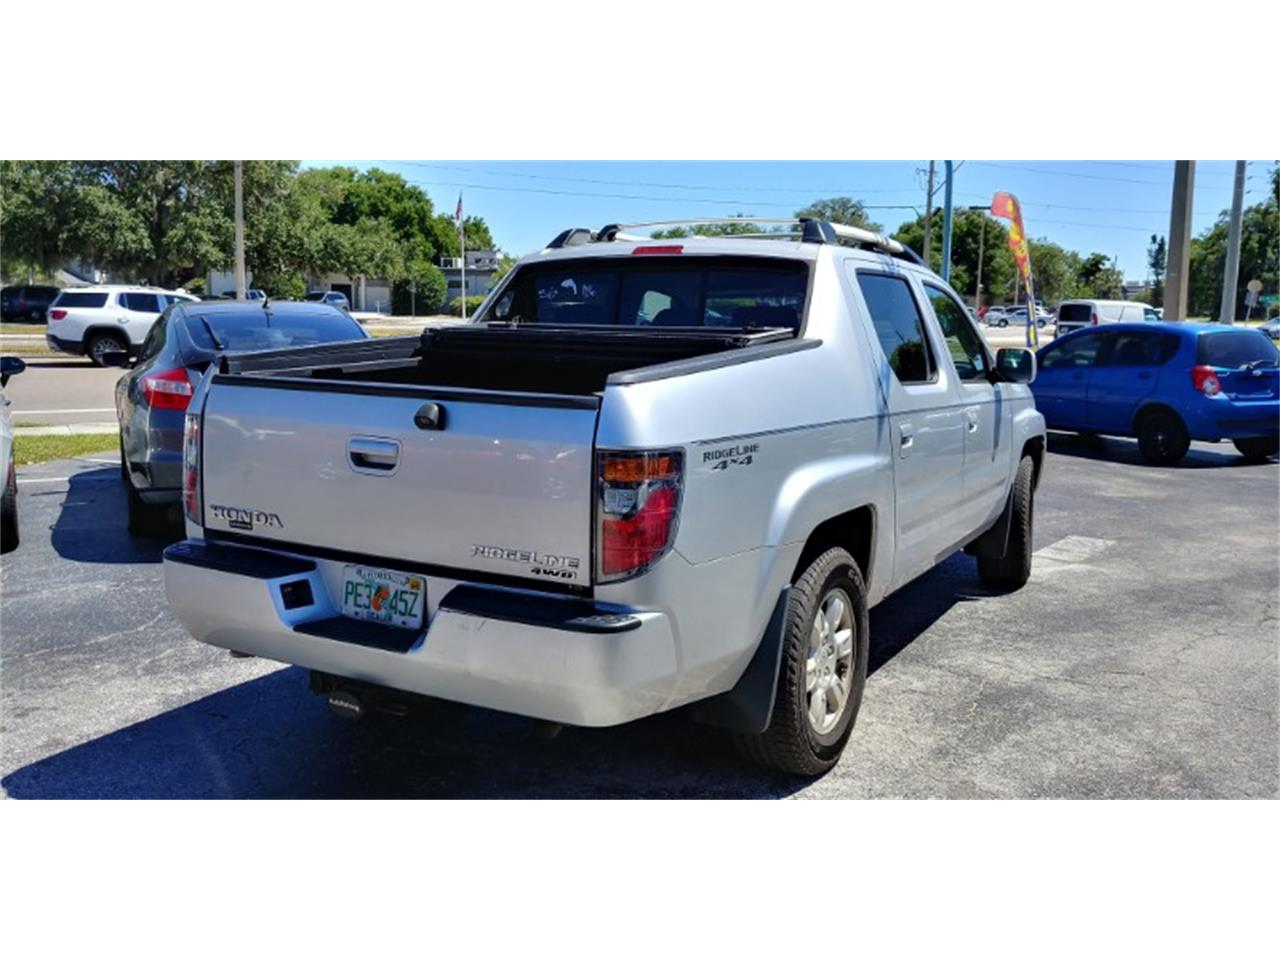 Large Picture of 2007 Honda Ridgeline located in Florida Offered by Seth Lee Auto Sales - PXK5